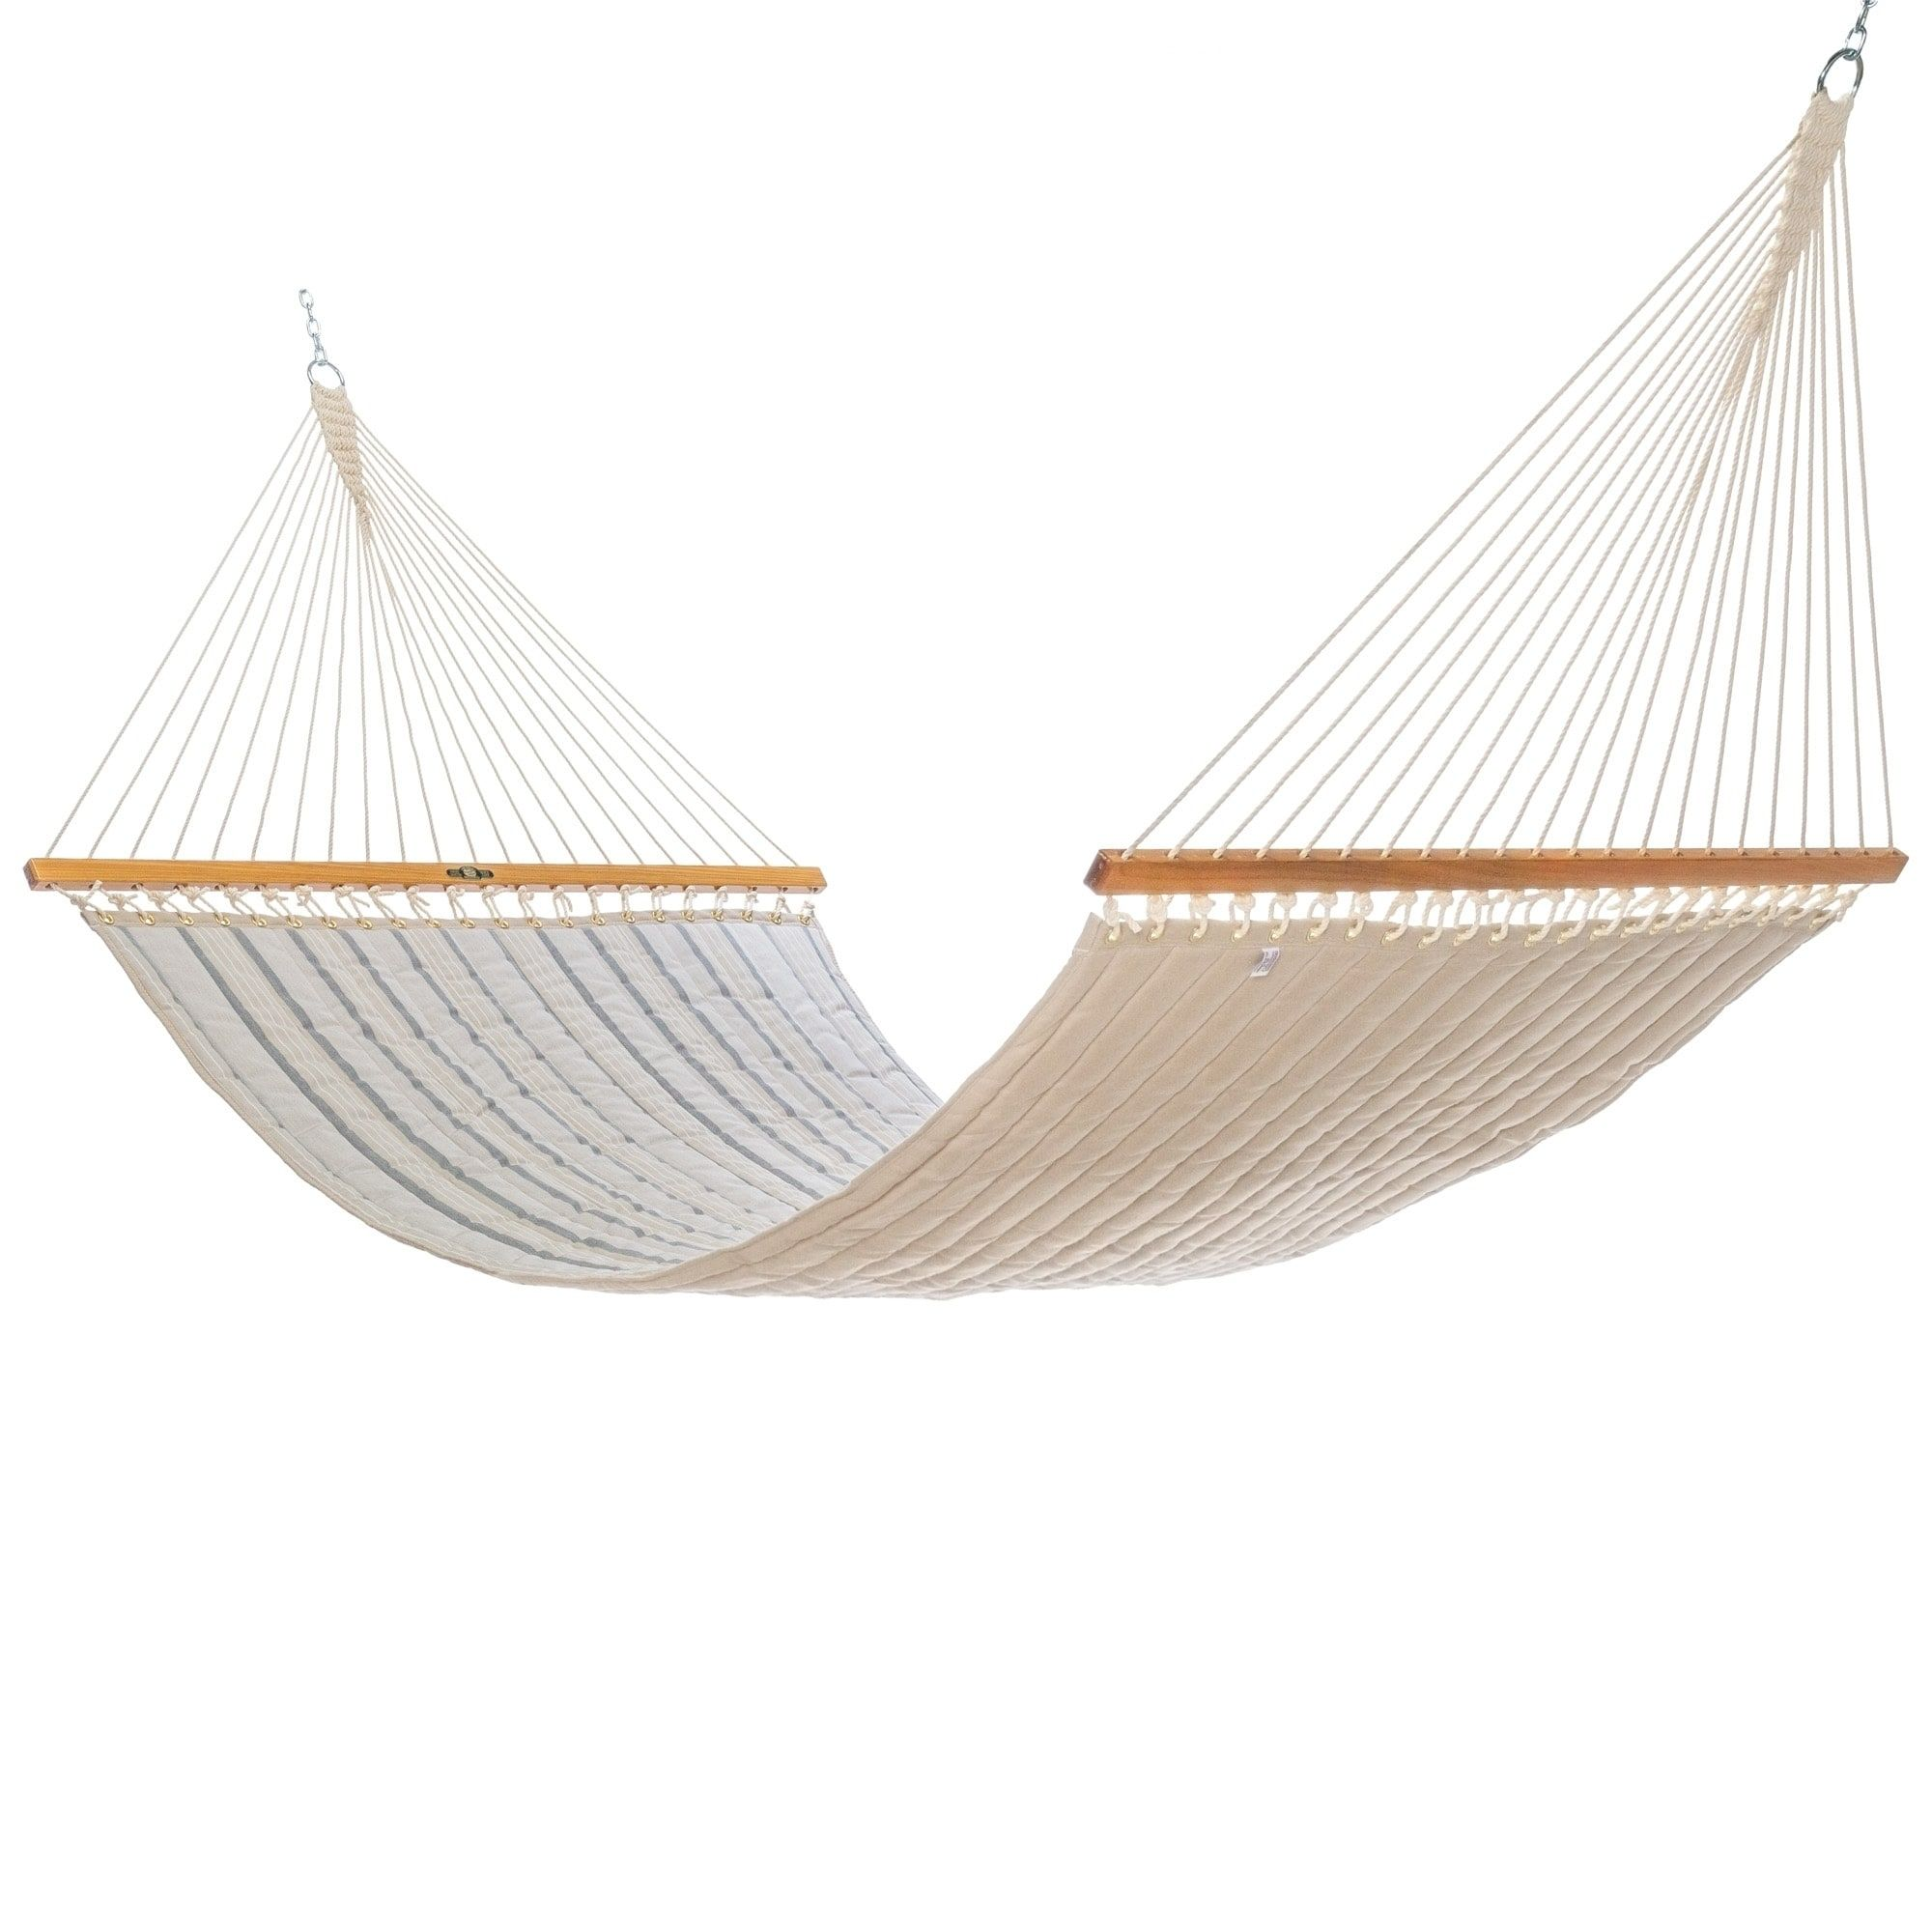 electronics com pad rope combo furniture patio polyester overstock bedding more hammock pin shopping hammocks jewelry clothing red and online